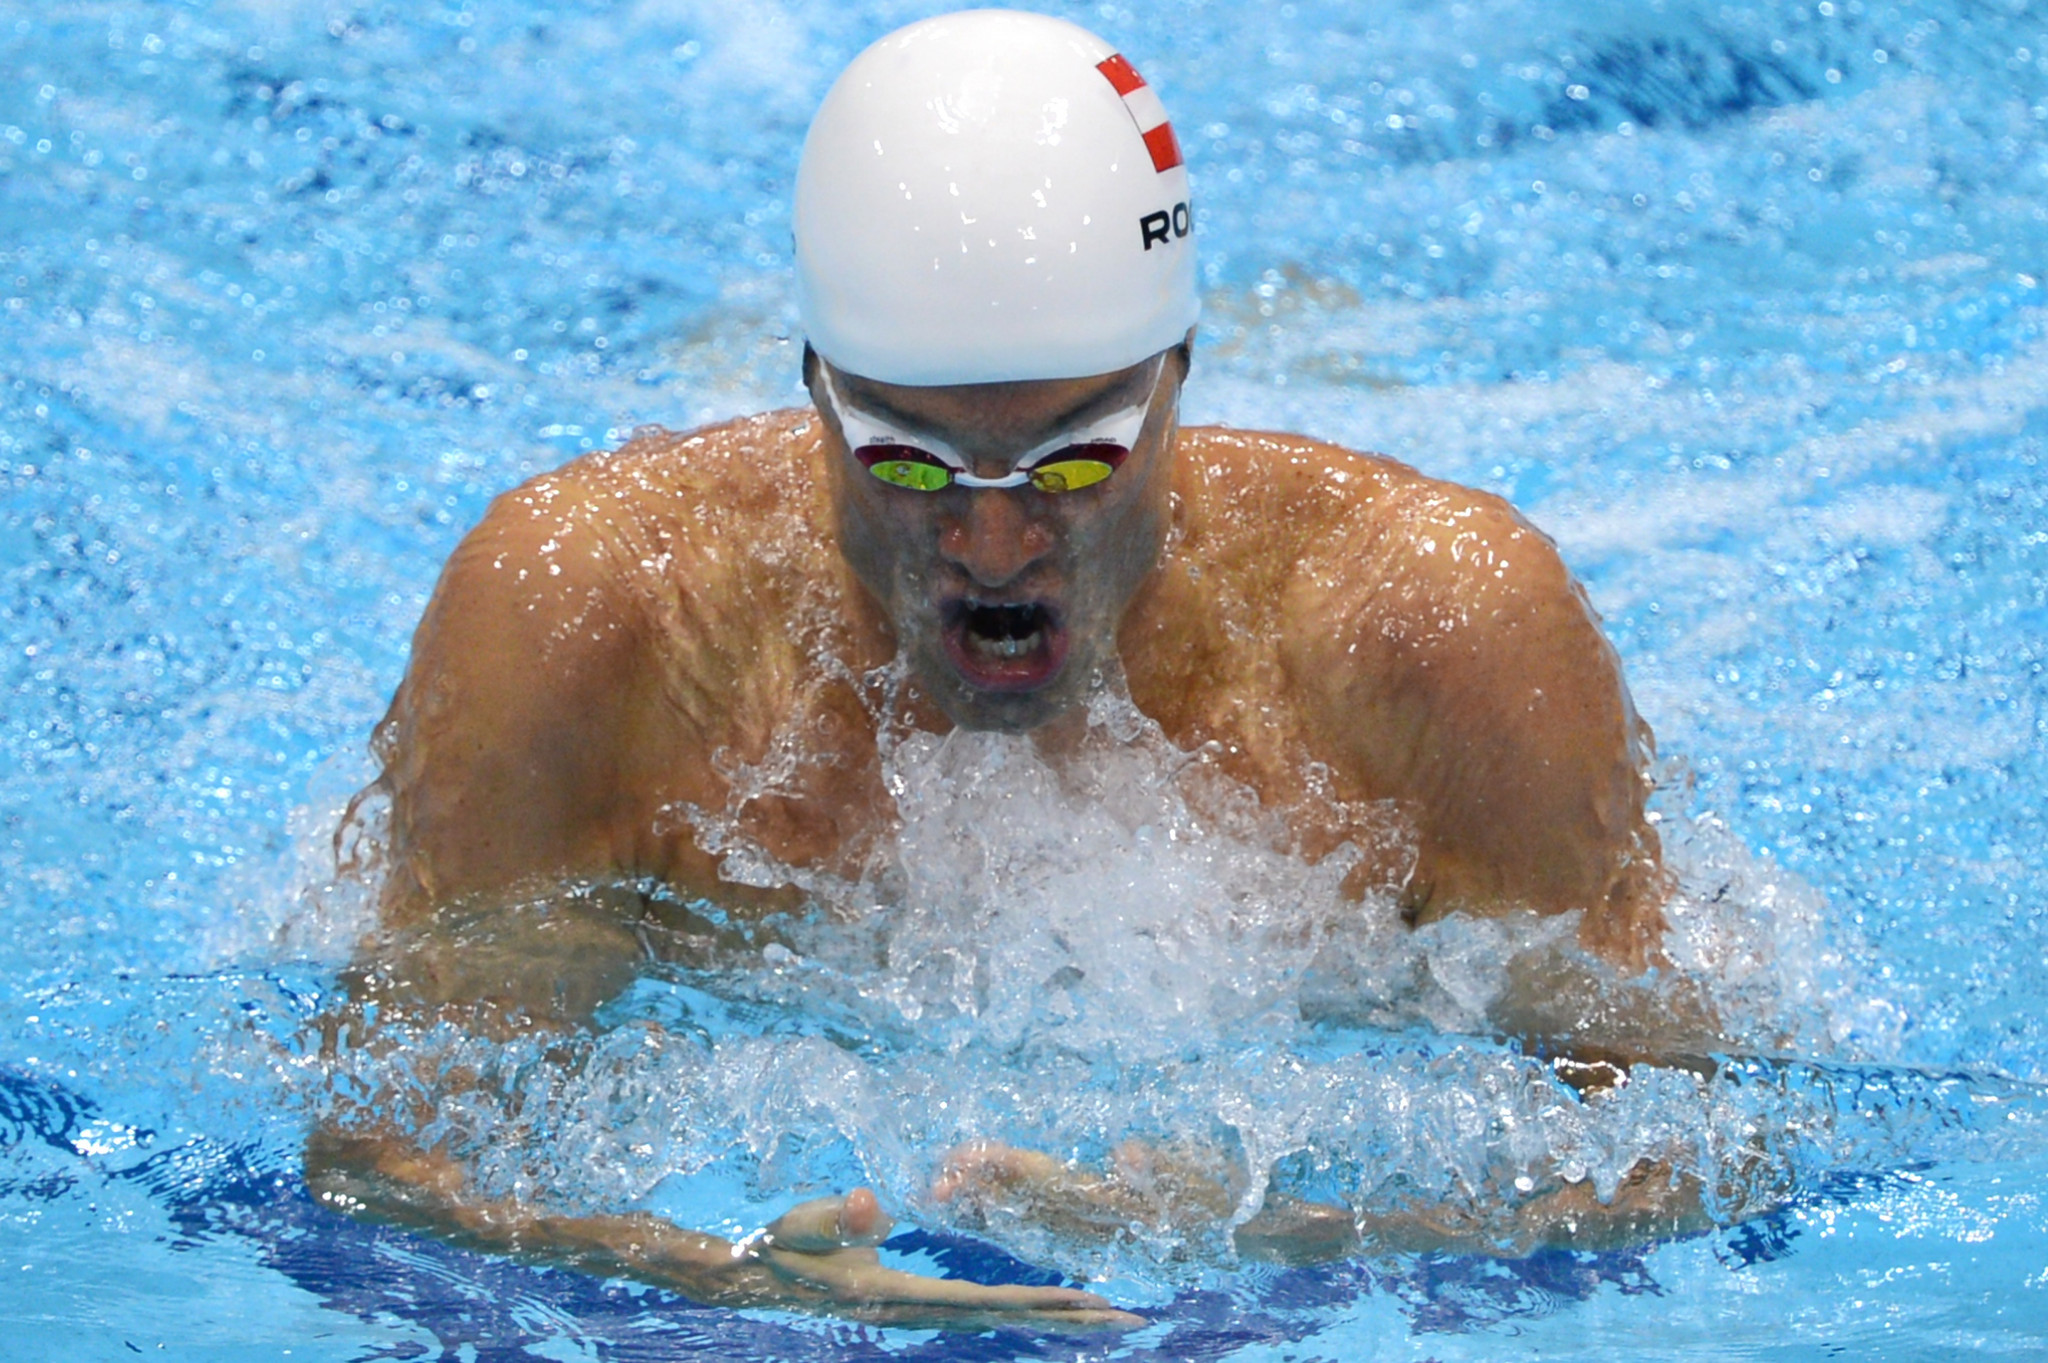 Olympic swimming medallist Rogan reportedly leaves Israel despite positive COVID-19 test